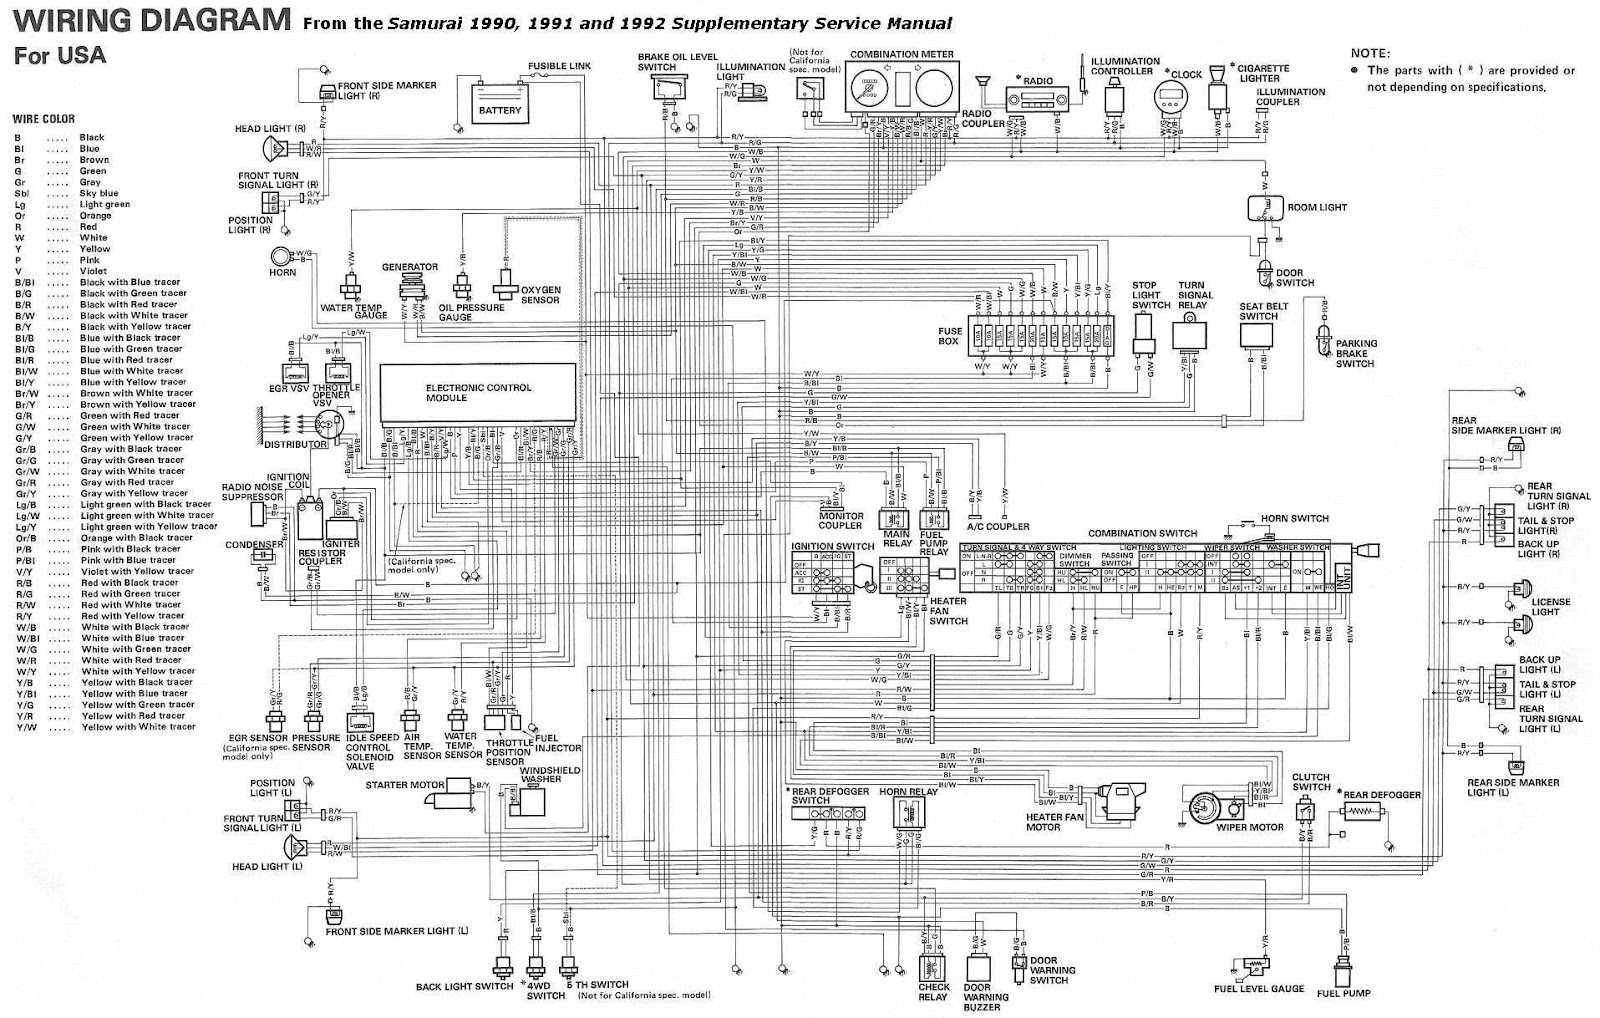 Suzuki+Samurai+1990 1992+Complete+Electrical+Wiring+Diagram+(USA)?resized665%2C423 suzuki vitara wiring schematic efcaviation com suzuki samurai ignition wiring diagram at gsmx.co